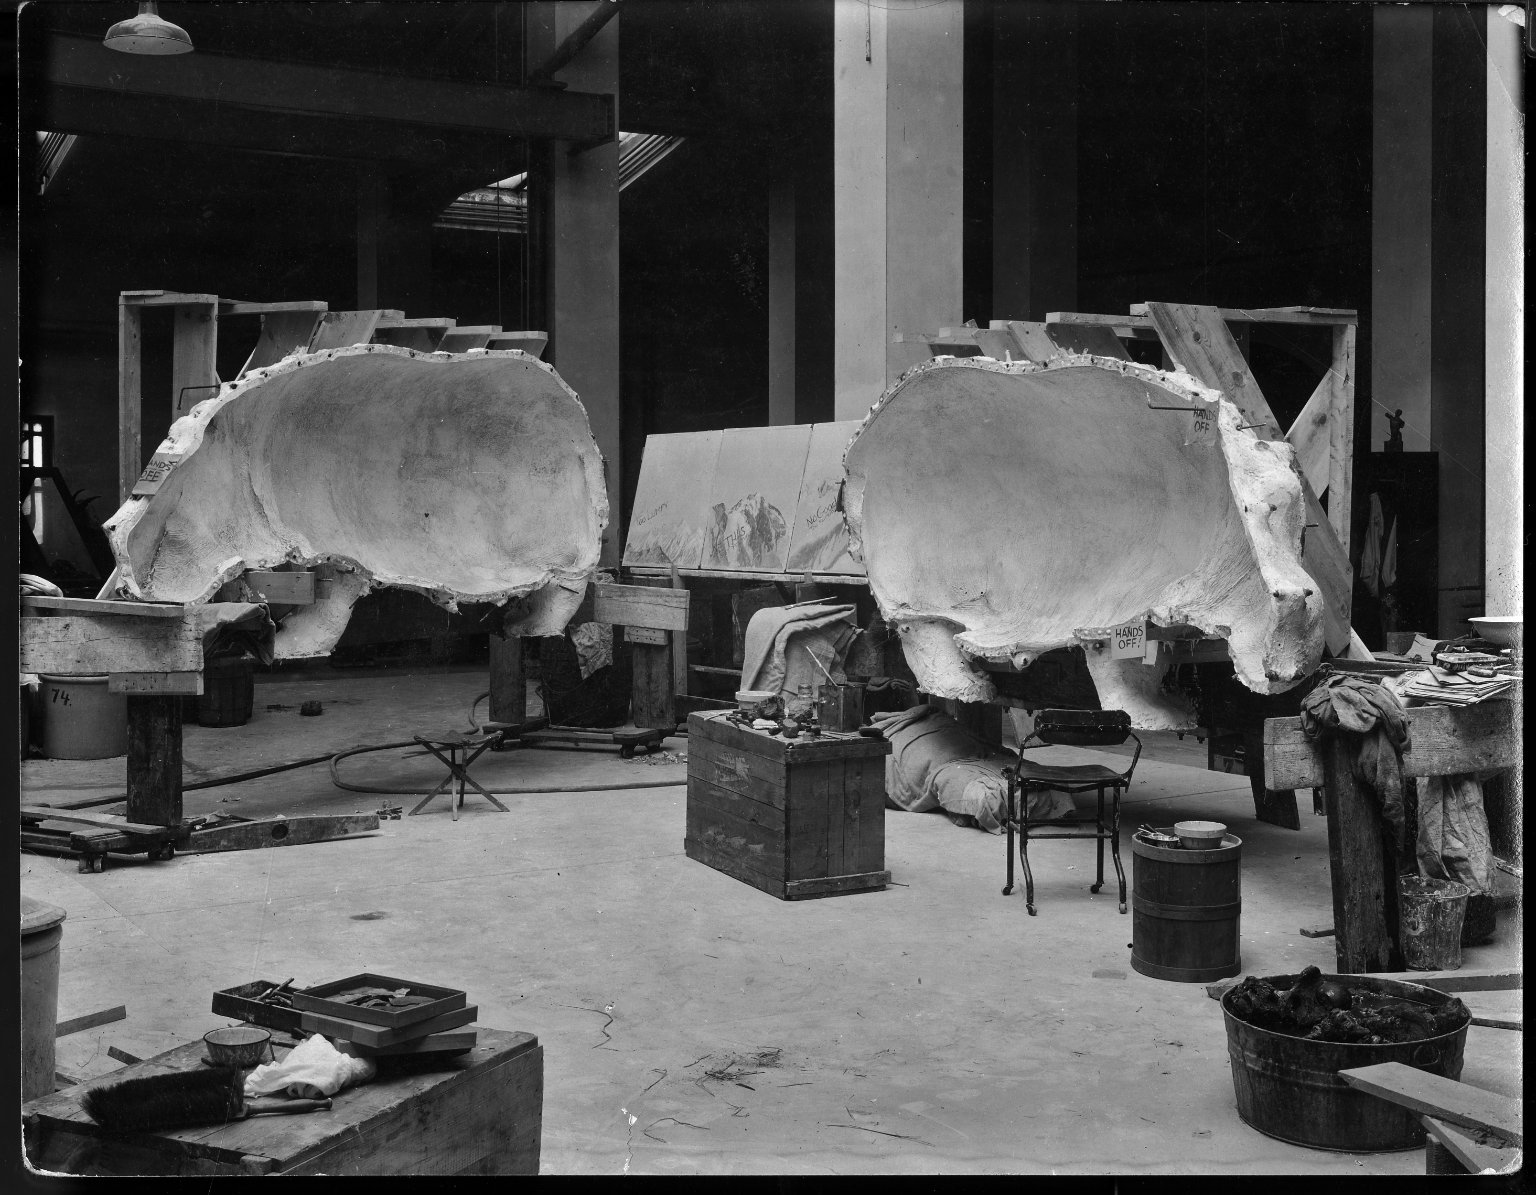 Mount being prepared for hippopotamus exhibit at The Field Museum